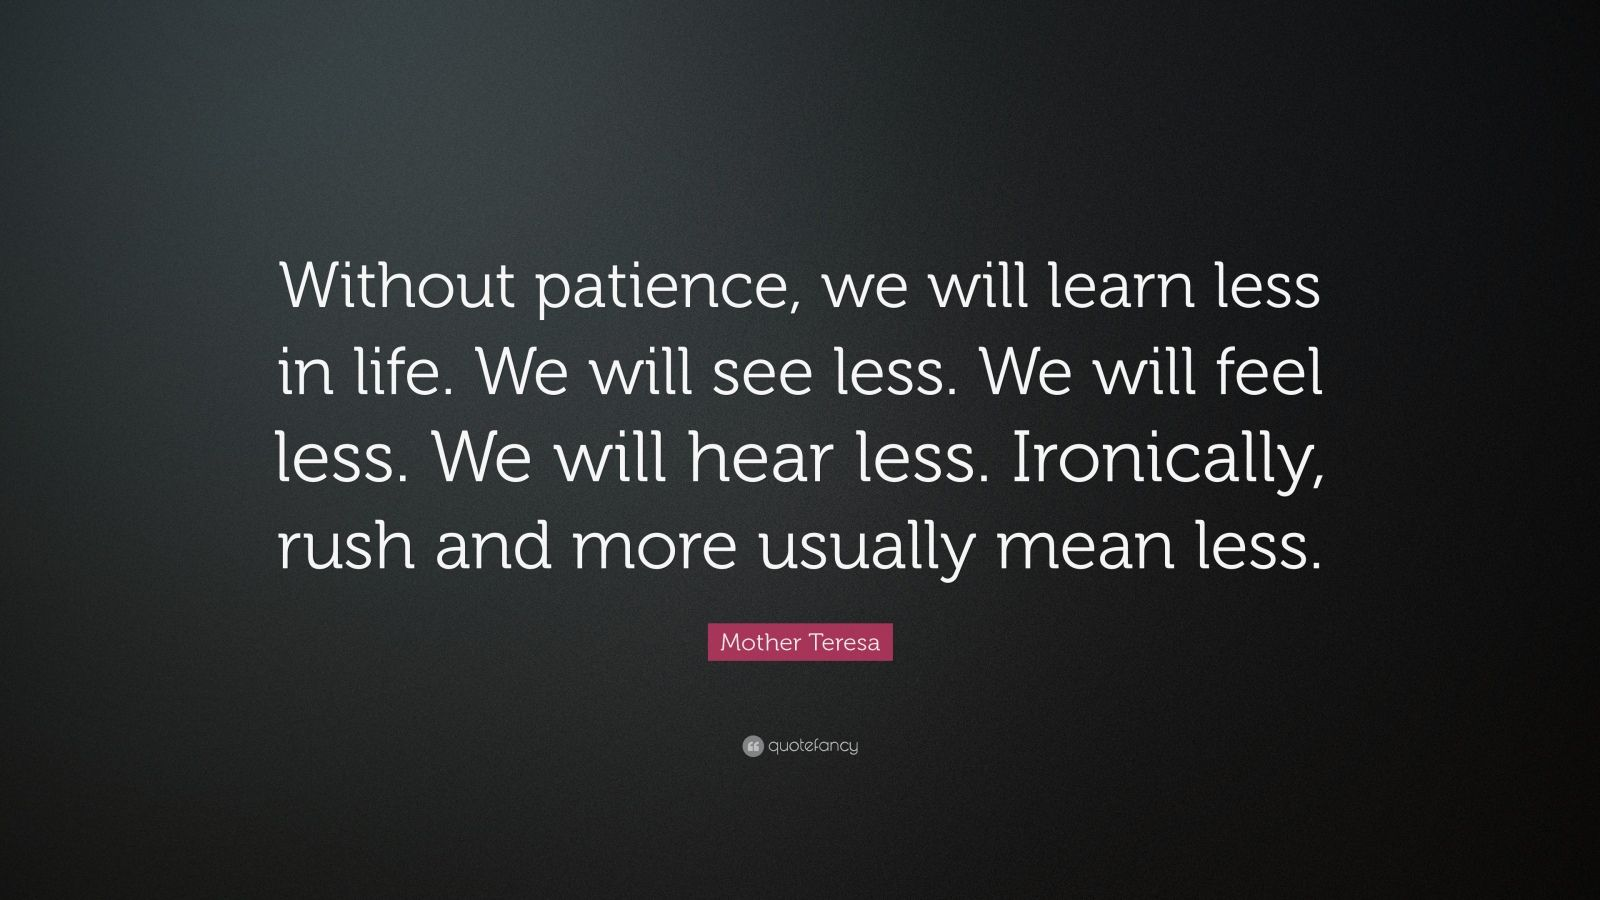 Elegant Patience Quotes: U201cWithout Patience, We Will Learn Less In Life. We Will